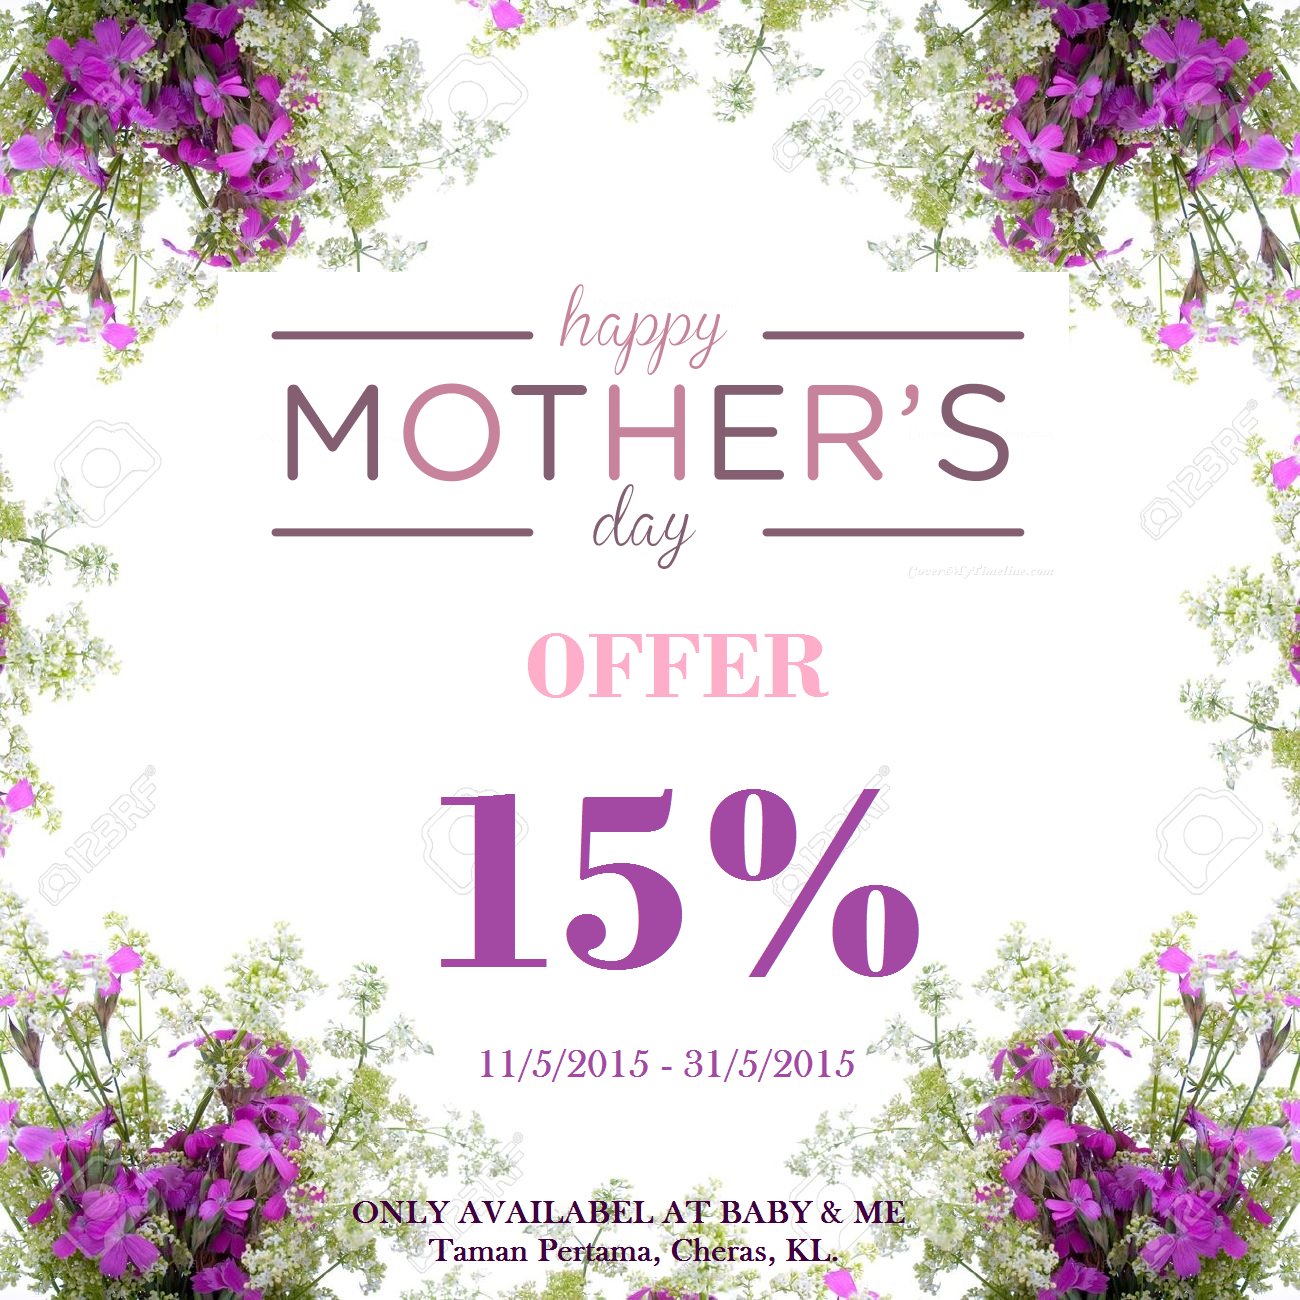 Happy Mother S Day Offer Baby Amp Me Taman Pertama